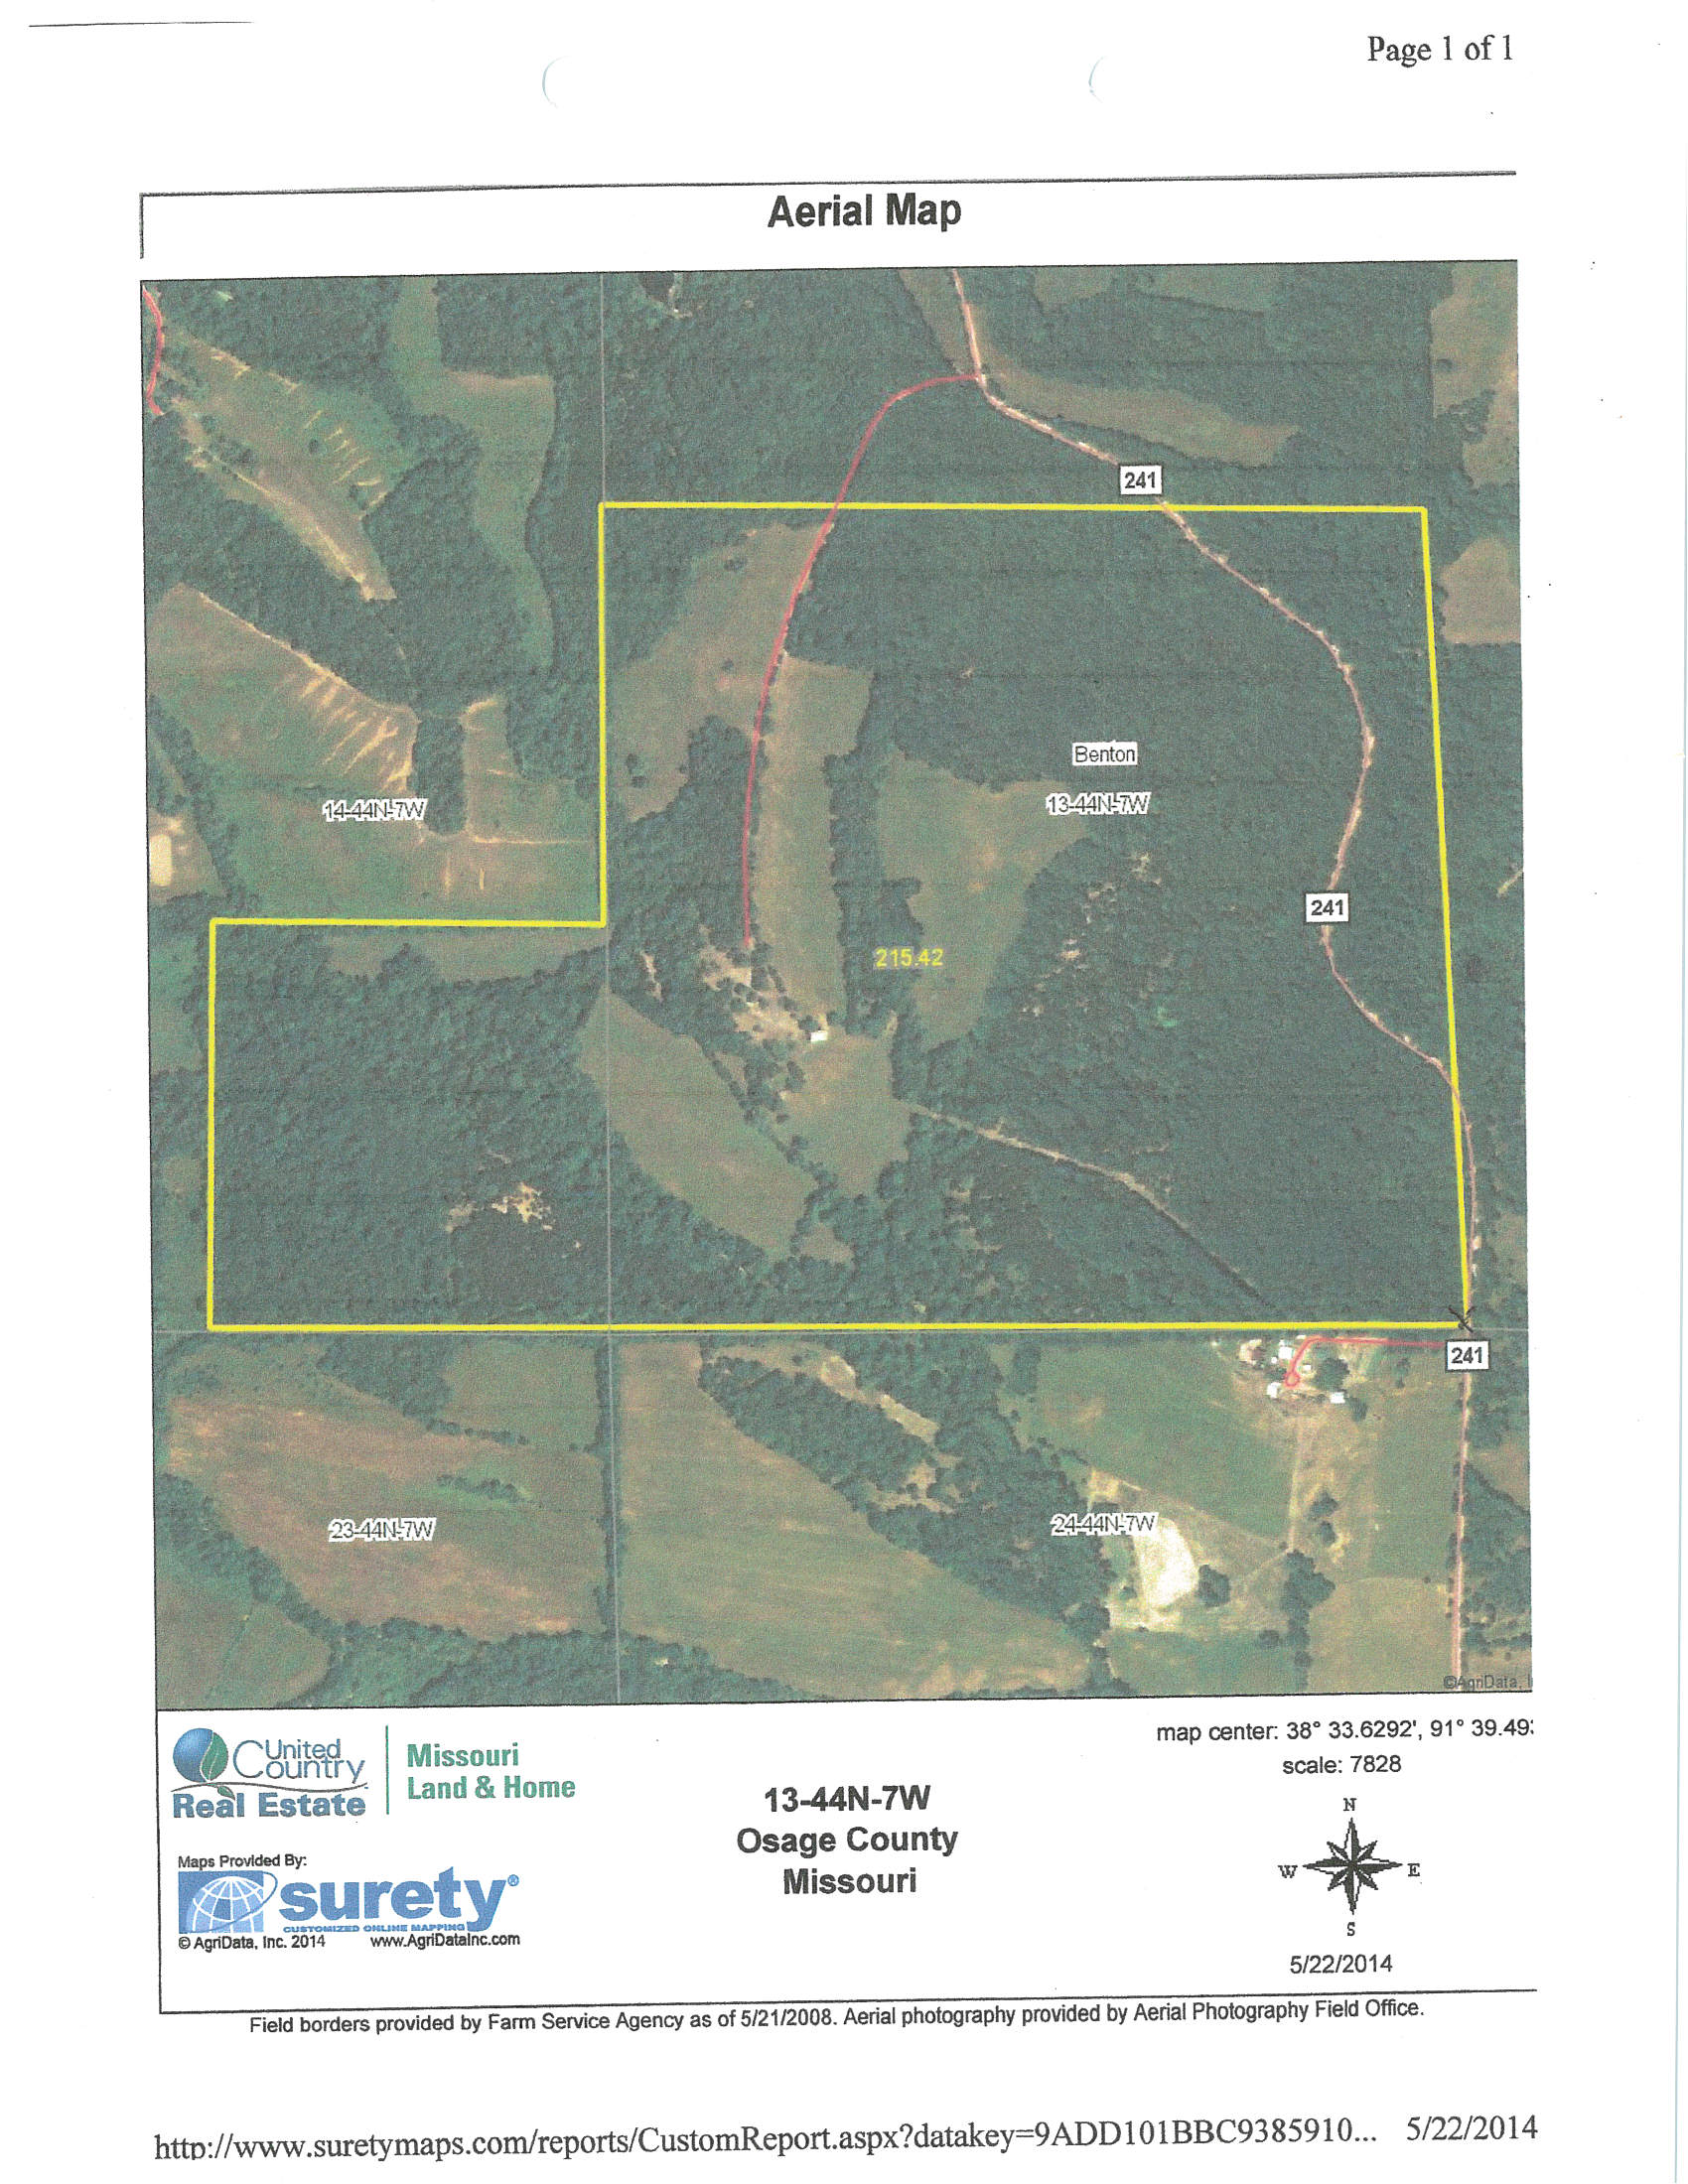 215 Acres in Osage County, Missouri